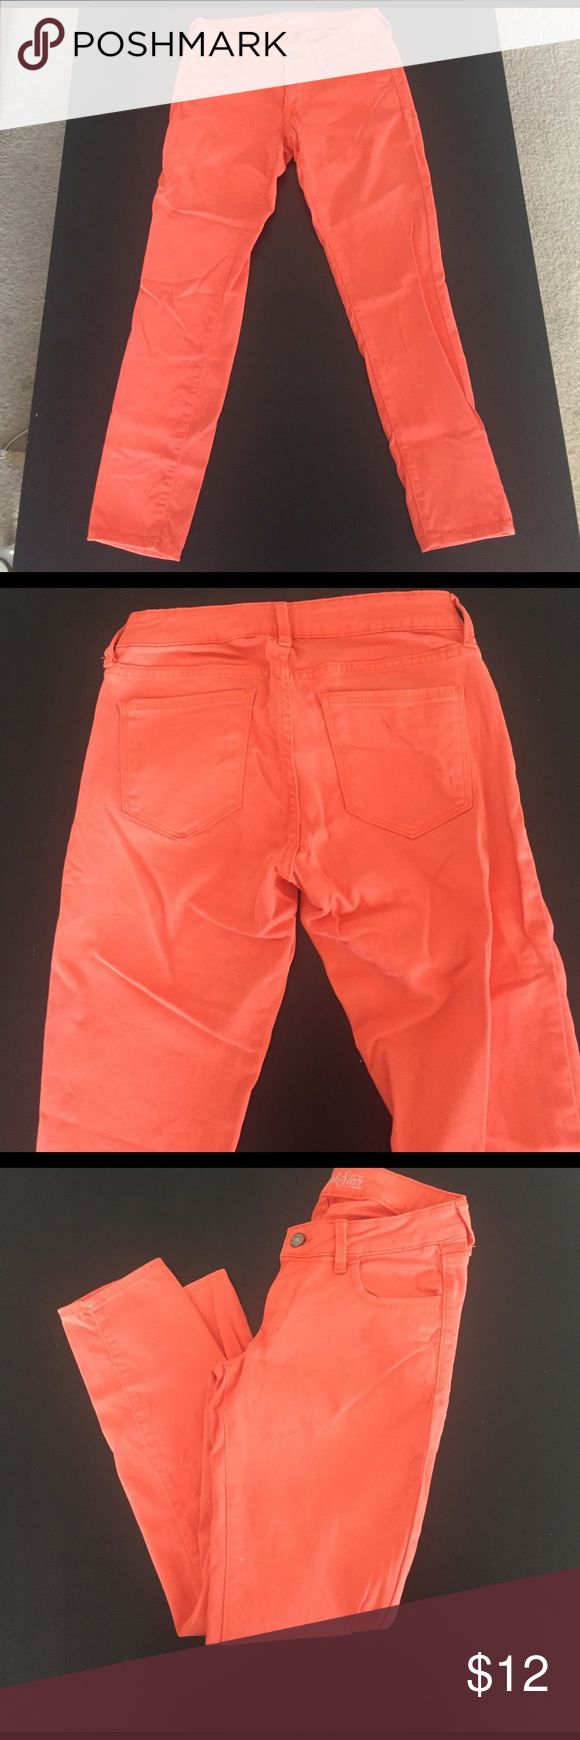 Orange cropped jeans Rock Star by Old Navy cropped jeans. Orange color makes a great outfit statement! No longer fit.  Gently worn. Tiny bleach spot on front left leg by inside seam. Price reflects this minor flaw. Says size 8 but fit more like a 4/6. Old Navy Jeans Ankle & Cropped